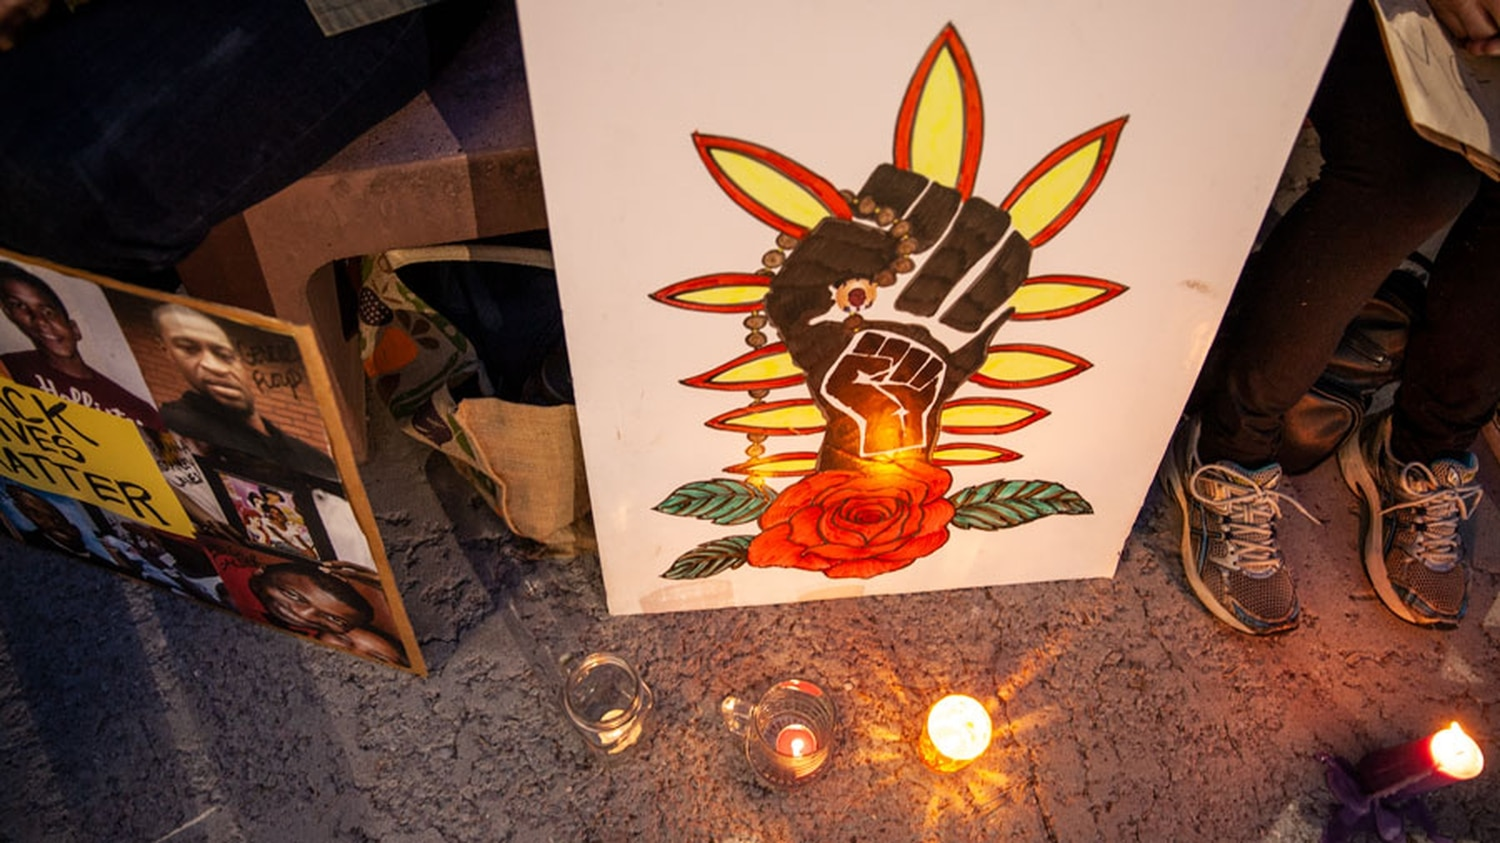 A New Mexican-inspired sign at Sunday's vigil.